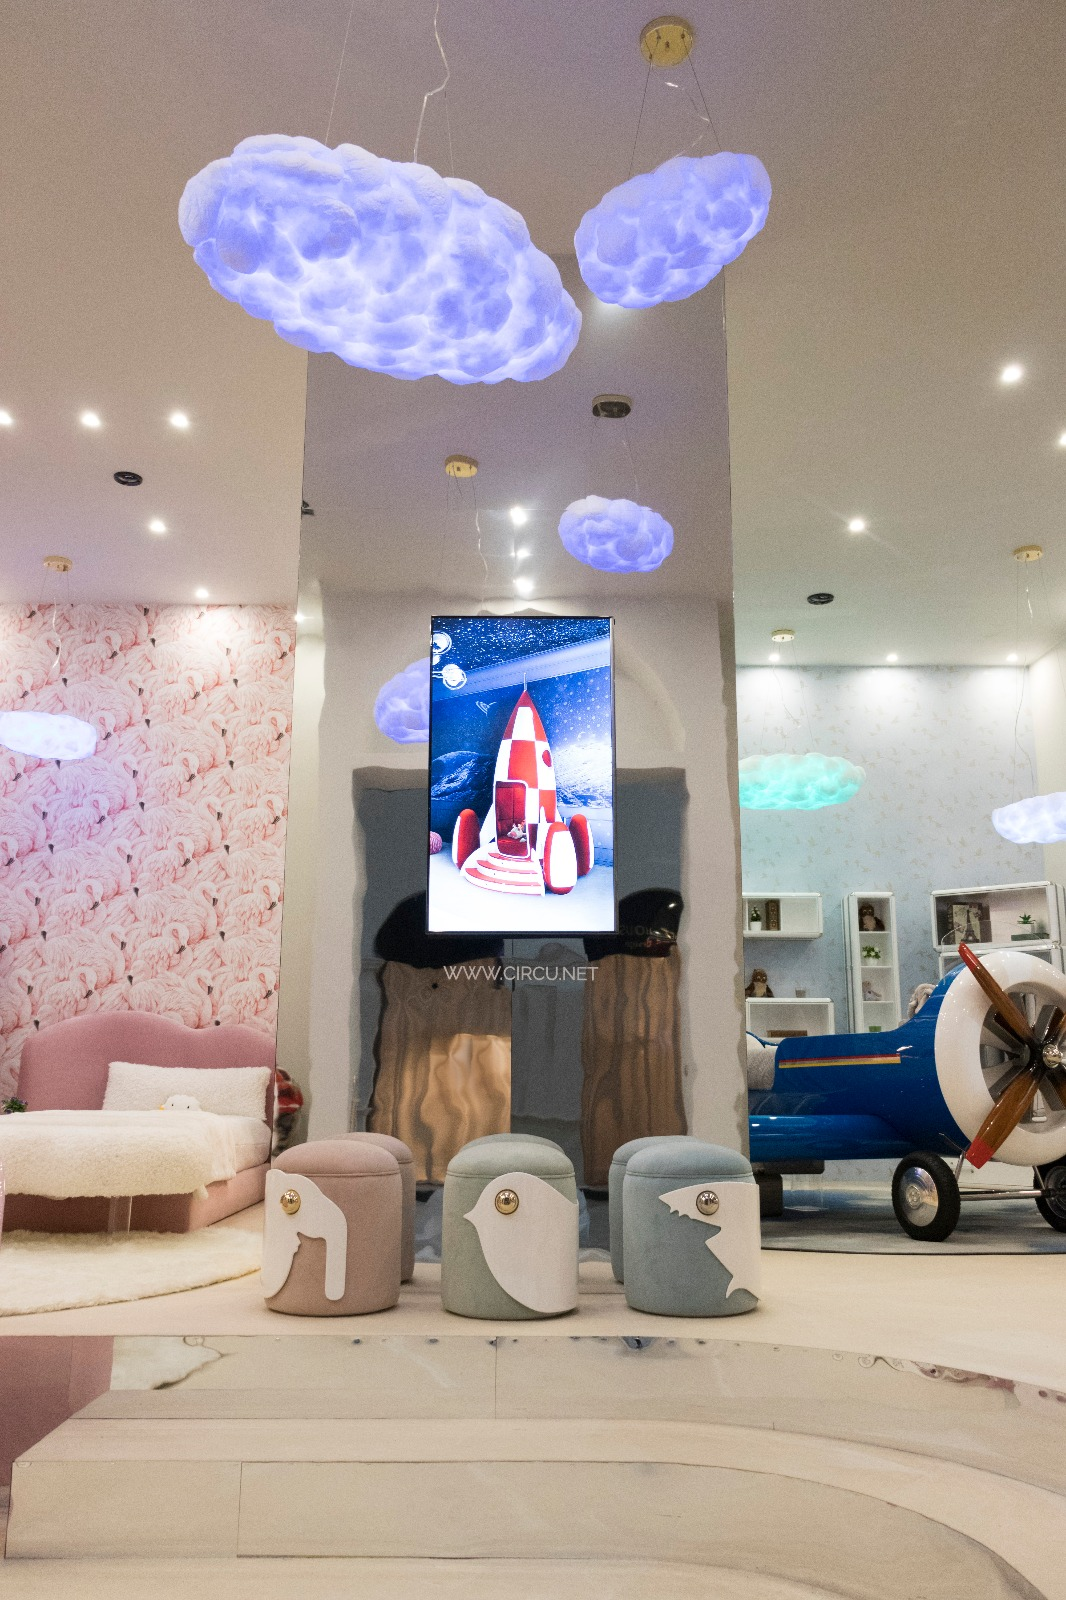 isaloni The Ultimate Guide For ISaloni & Milan Design Week 2019 The Ultimate Guide For ISaloni Milan Design Week 2019 15